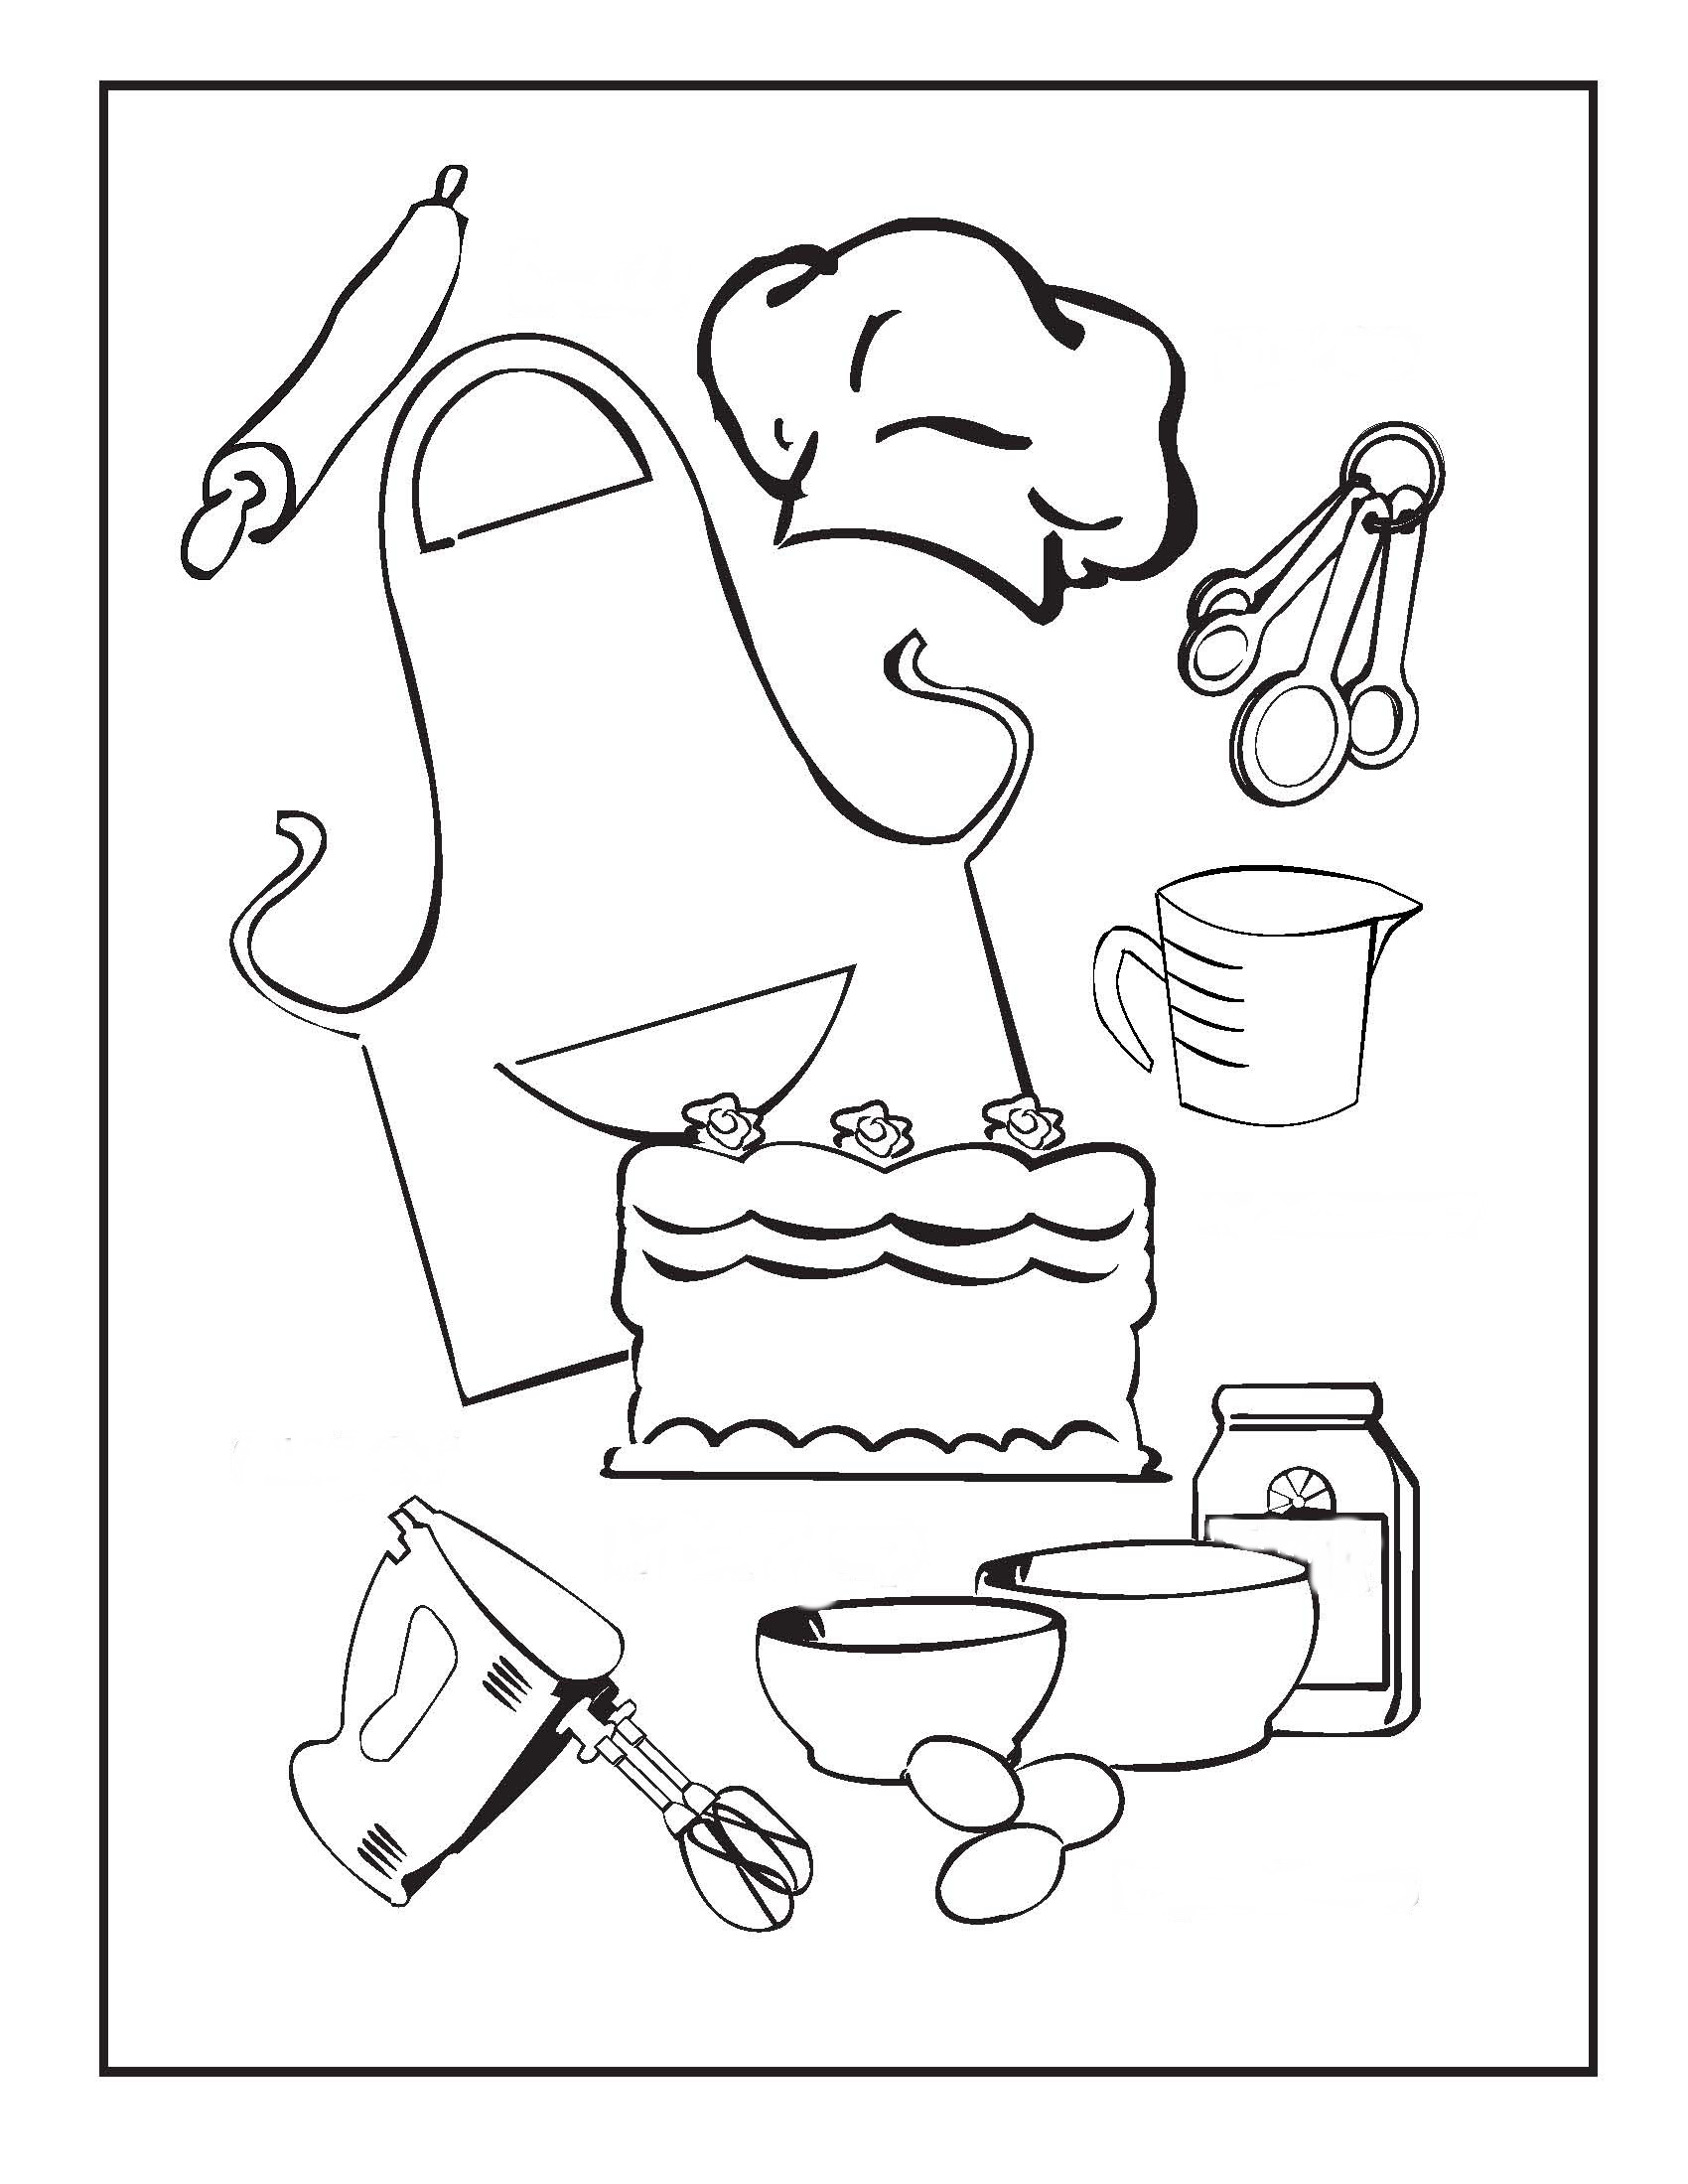 Power Drill - Tools - Power Drill Coloring Page Clipart (#436600) -  PinClipart | 2199x1700